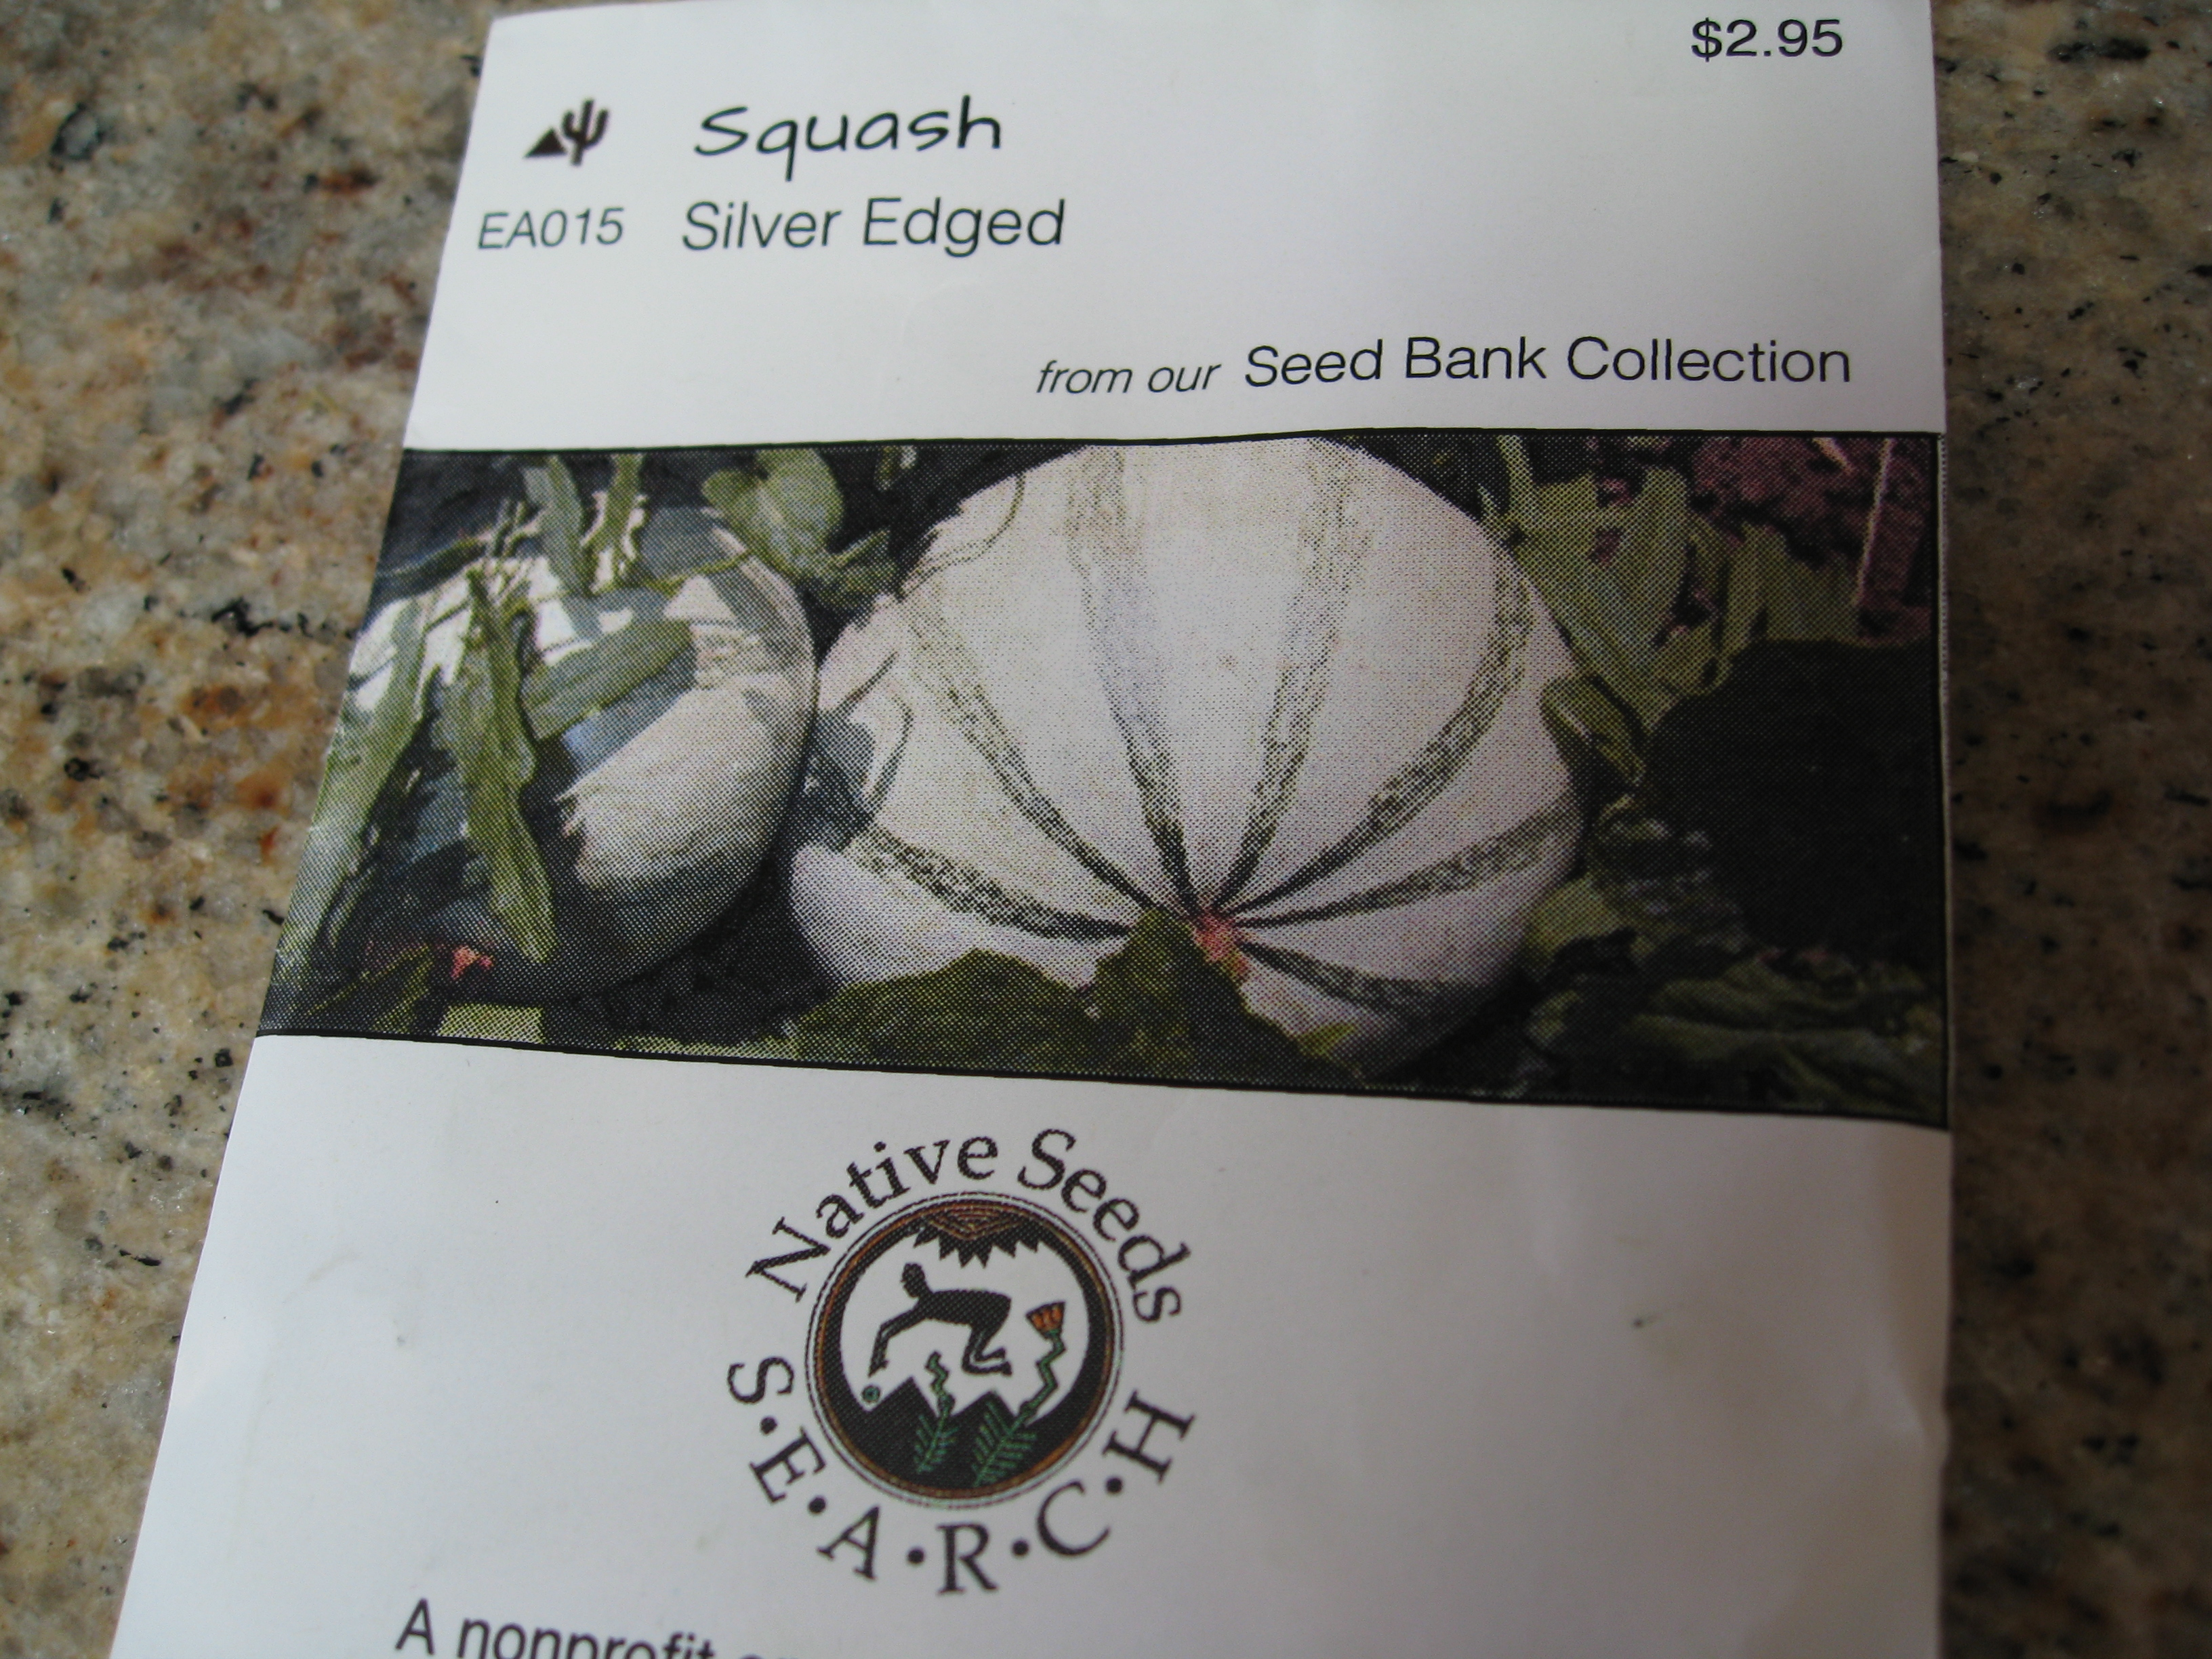 The squash flesh is unpalatable but it is grown for the tasty and beautiful seeds.